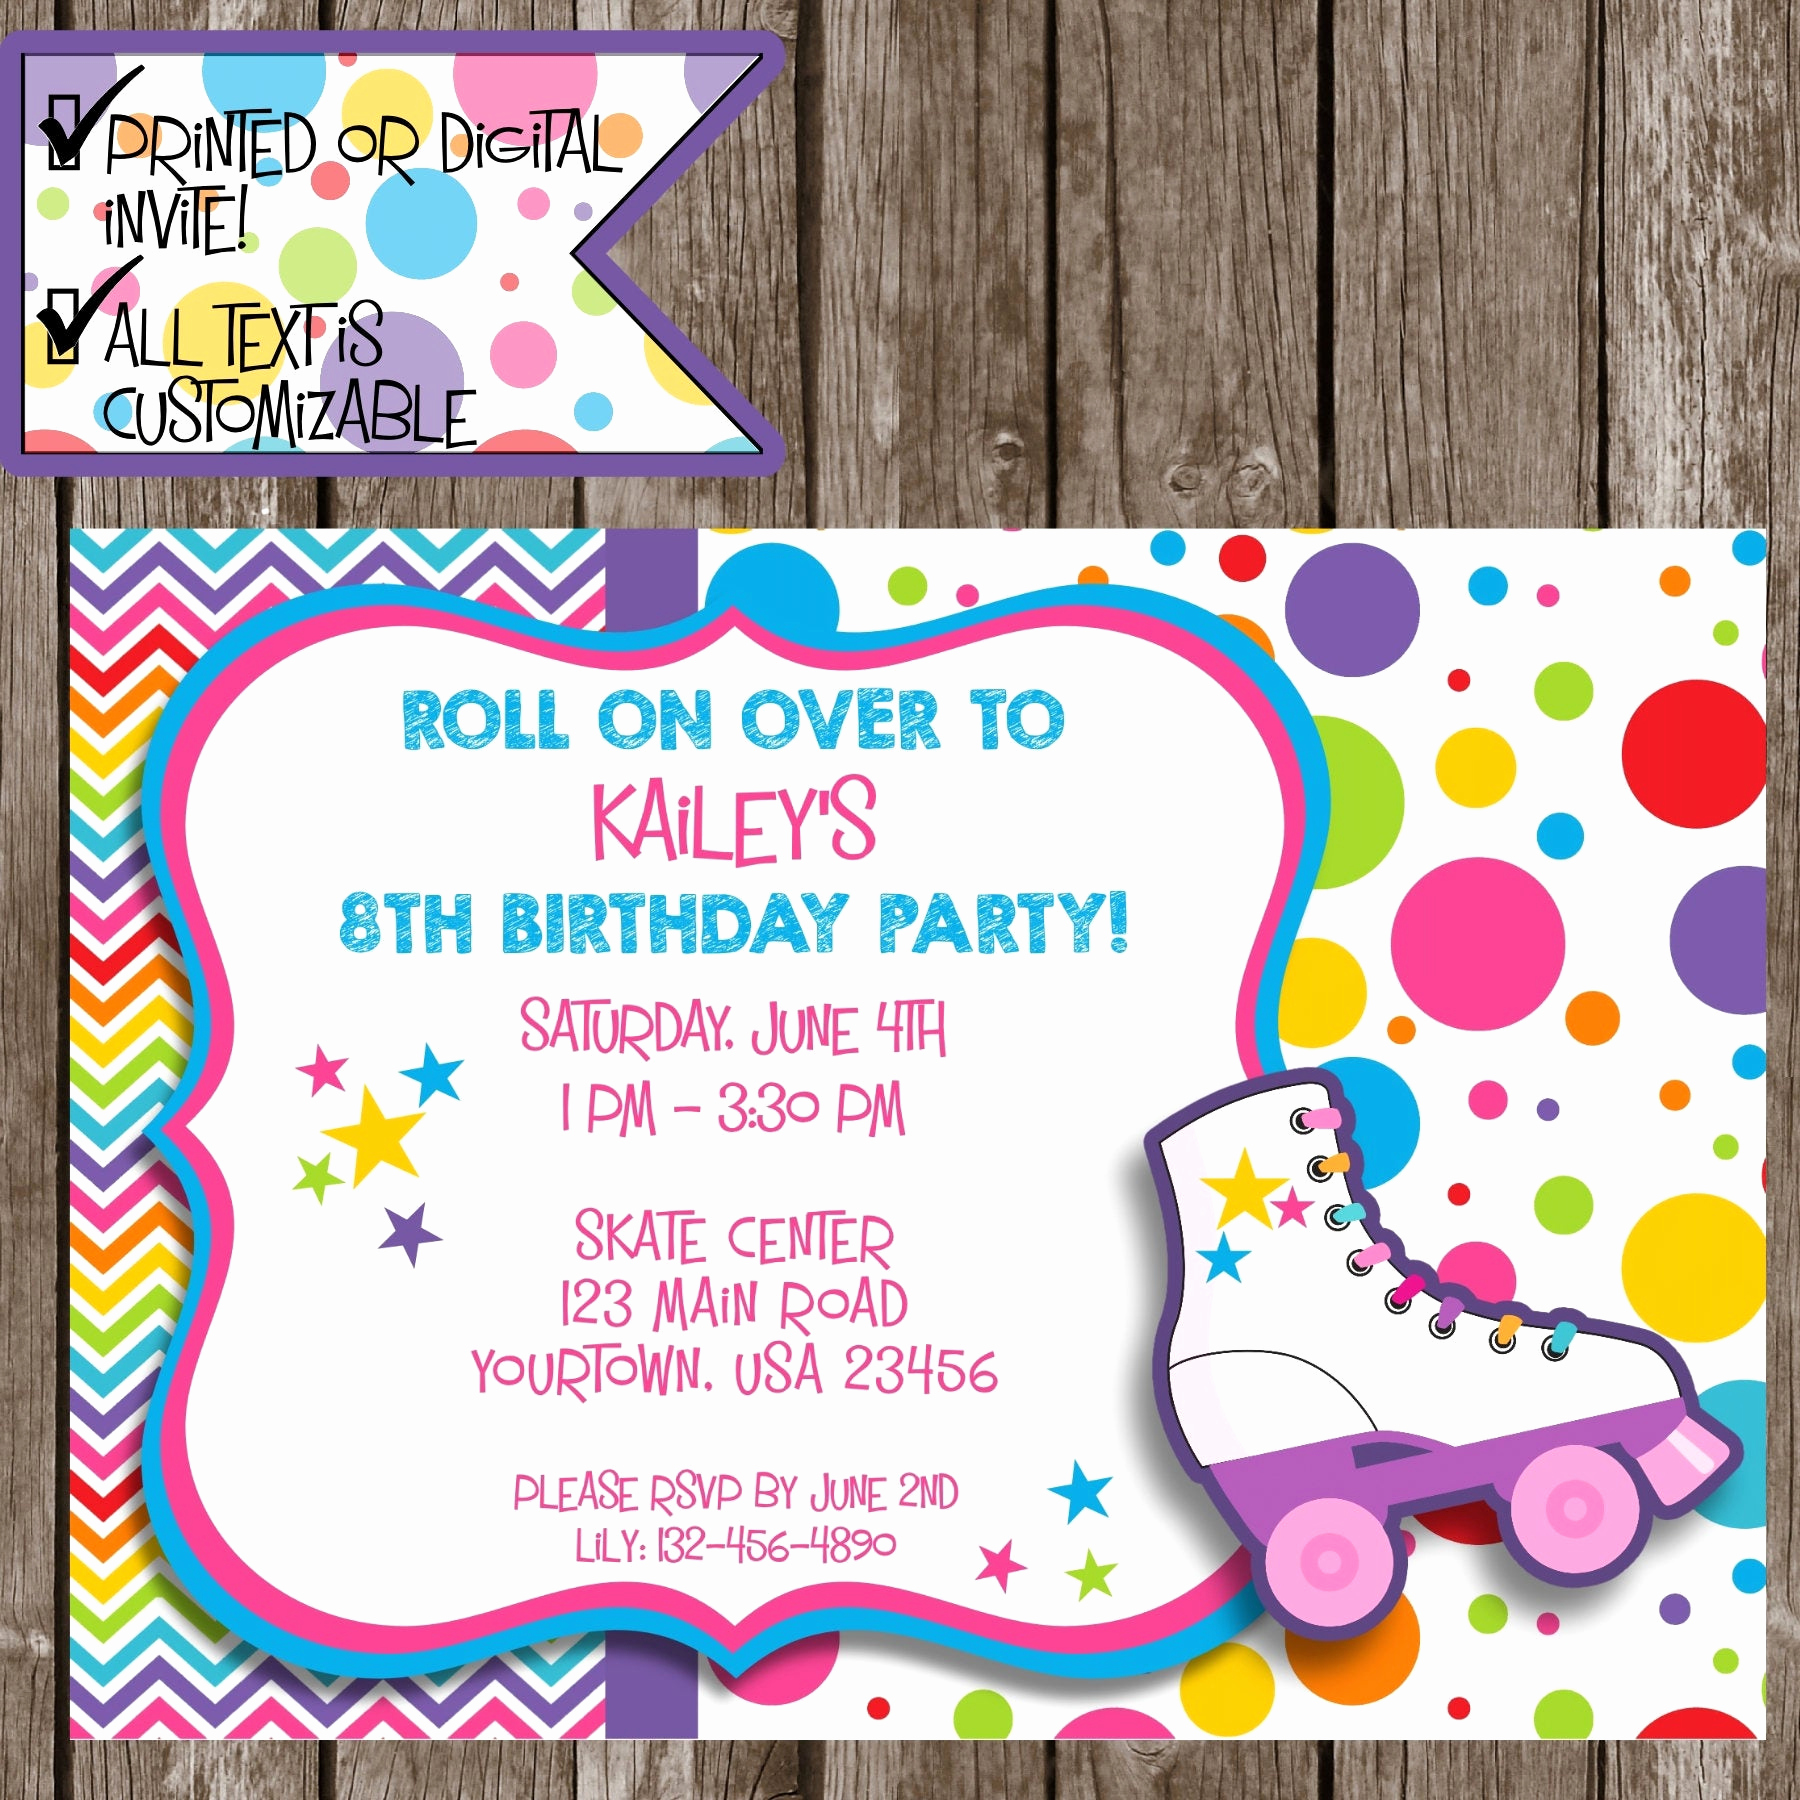 Skate Party Invitation Wording Fresh Roller Skating Invitation Roller Skating Party Skating Party